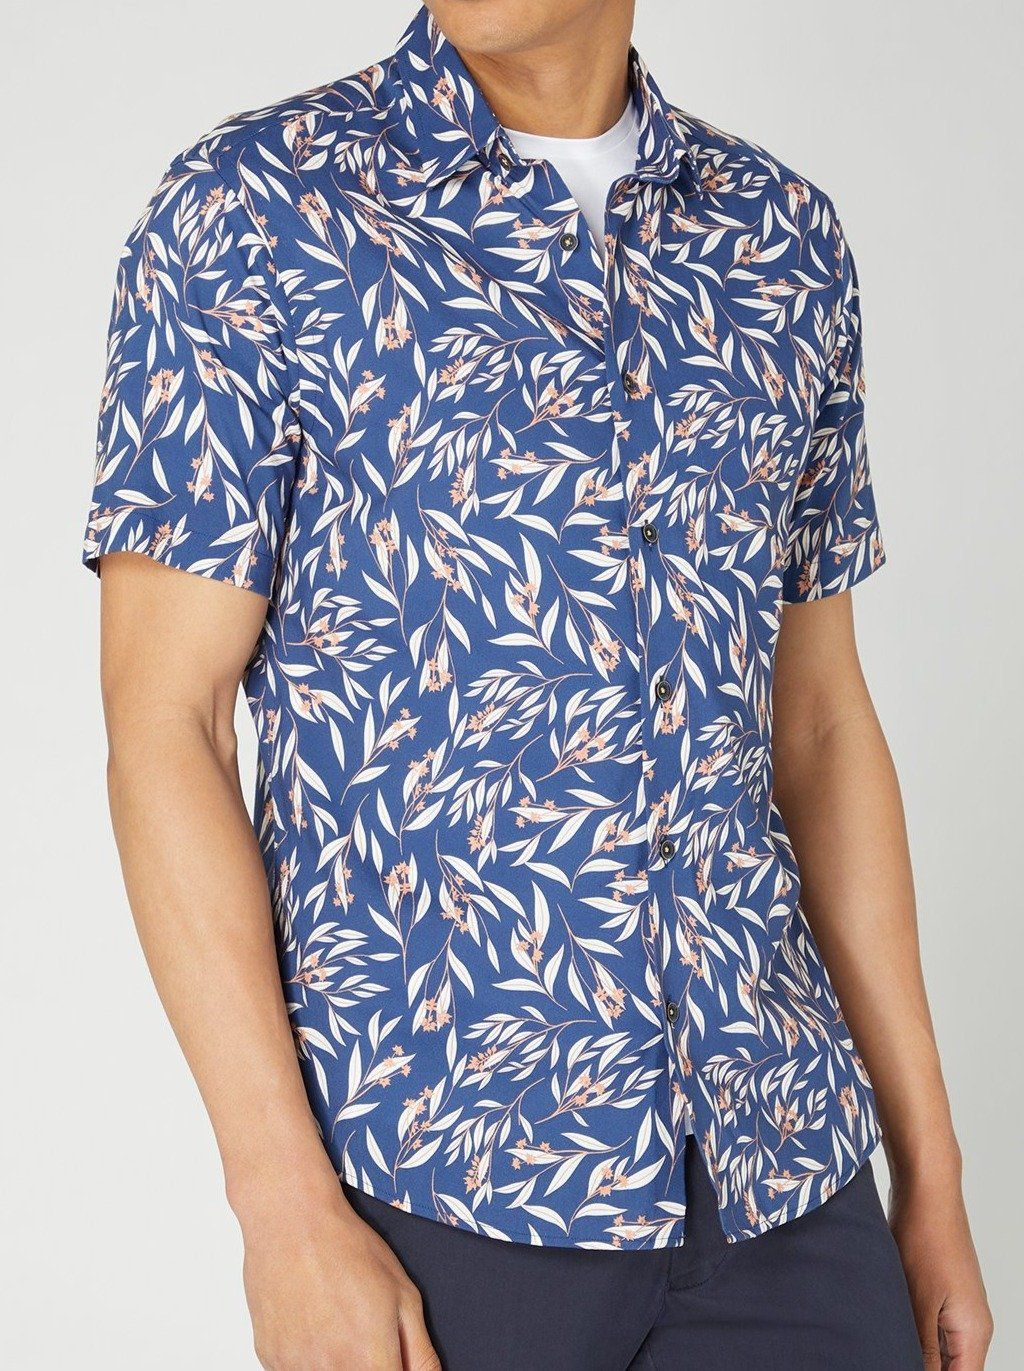 Blue With White & Peach Floral Pattern Short-Sleeved Shirt 15.5